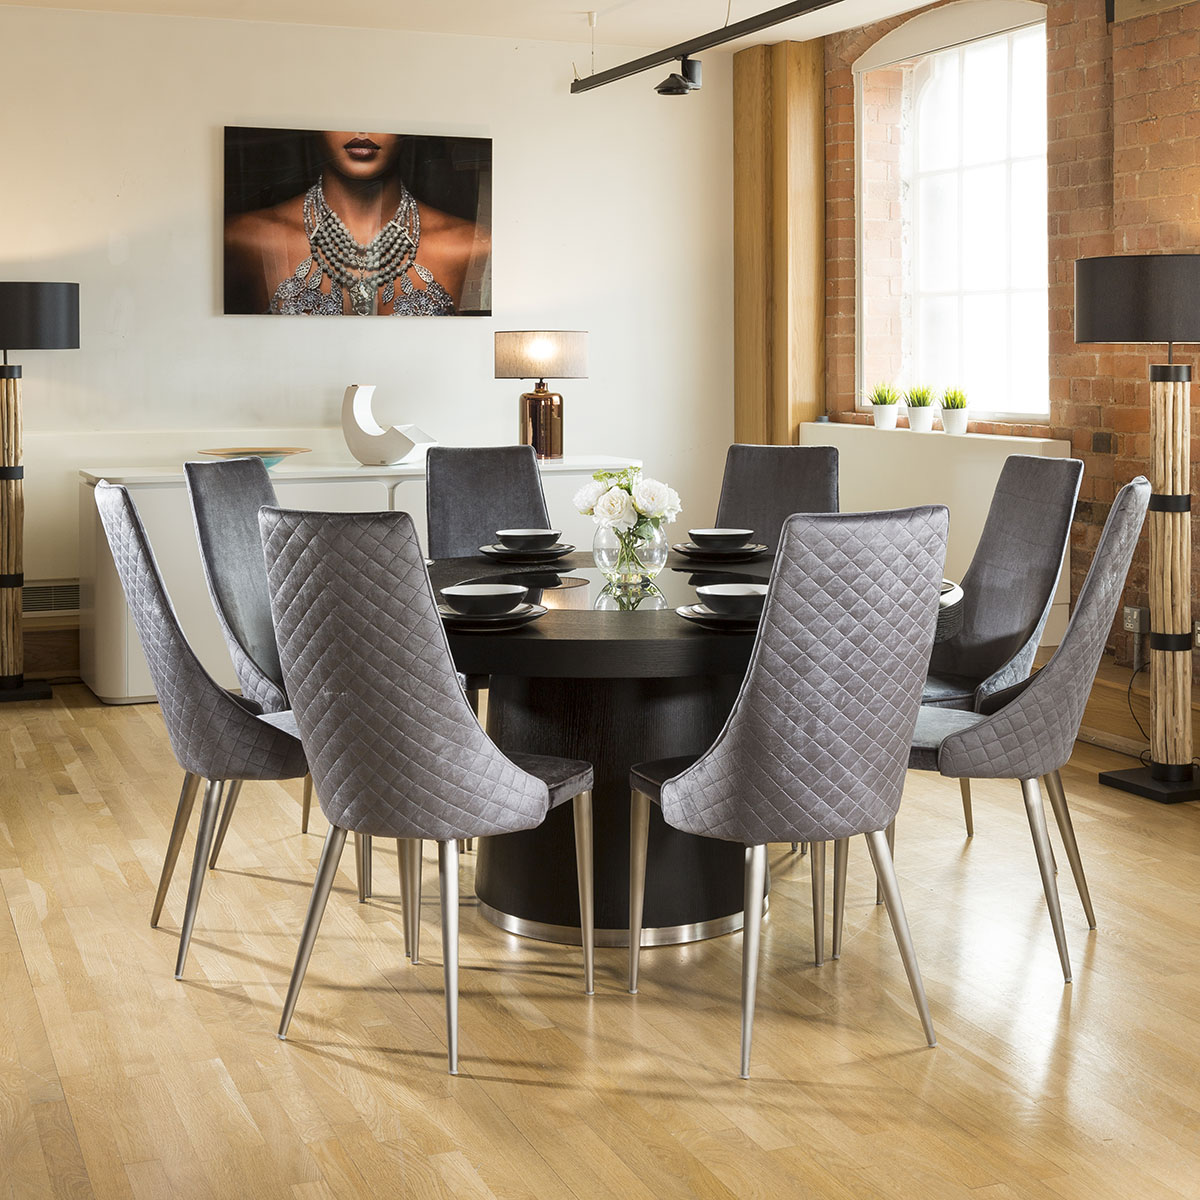 1 6 Round Black Oak Dining Set 8 High Grey Dining Chairs